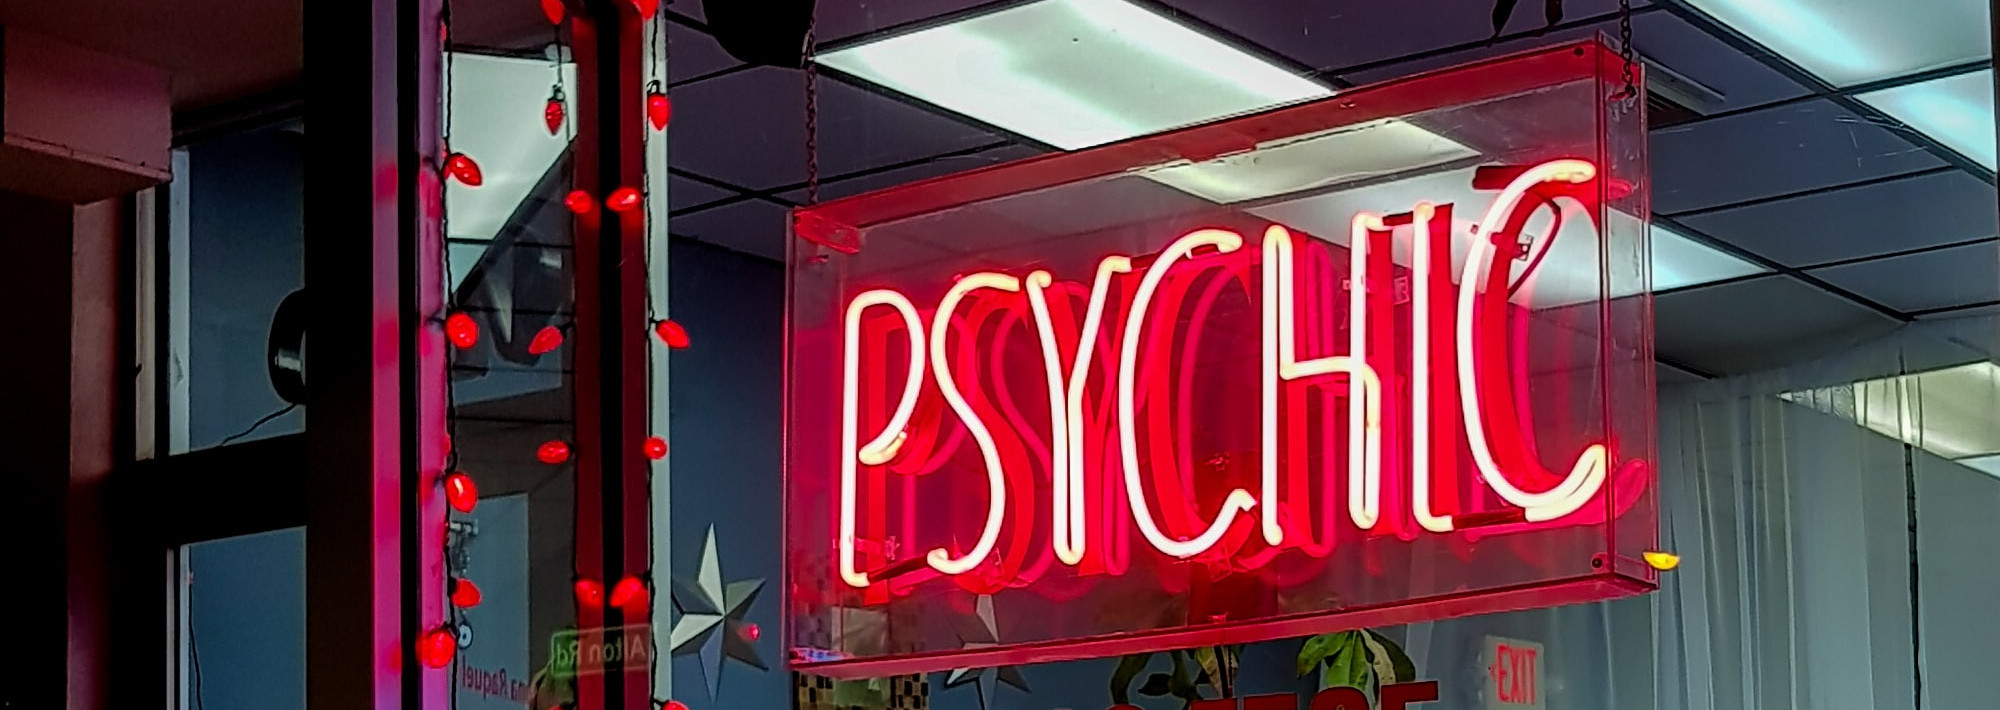 "A red neon window sign with the word ""Psychic"""